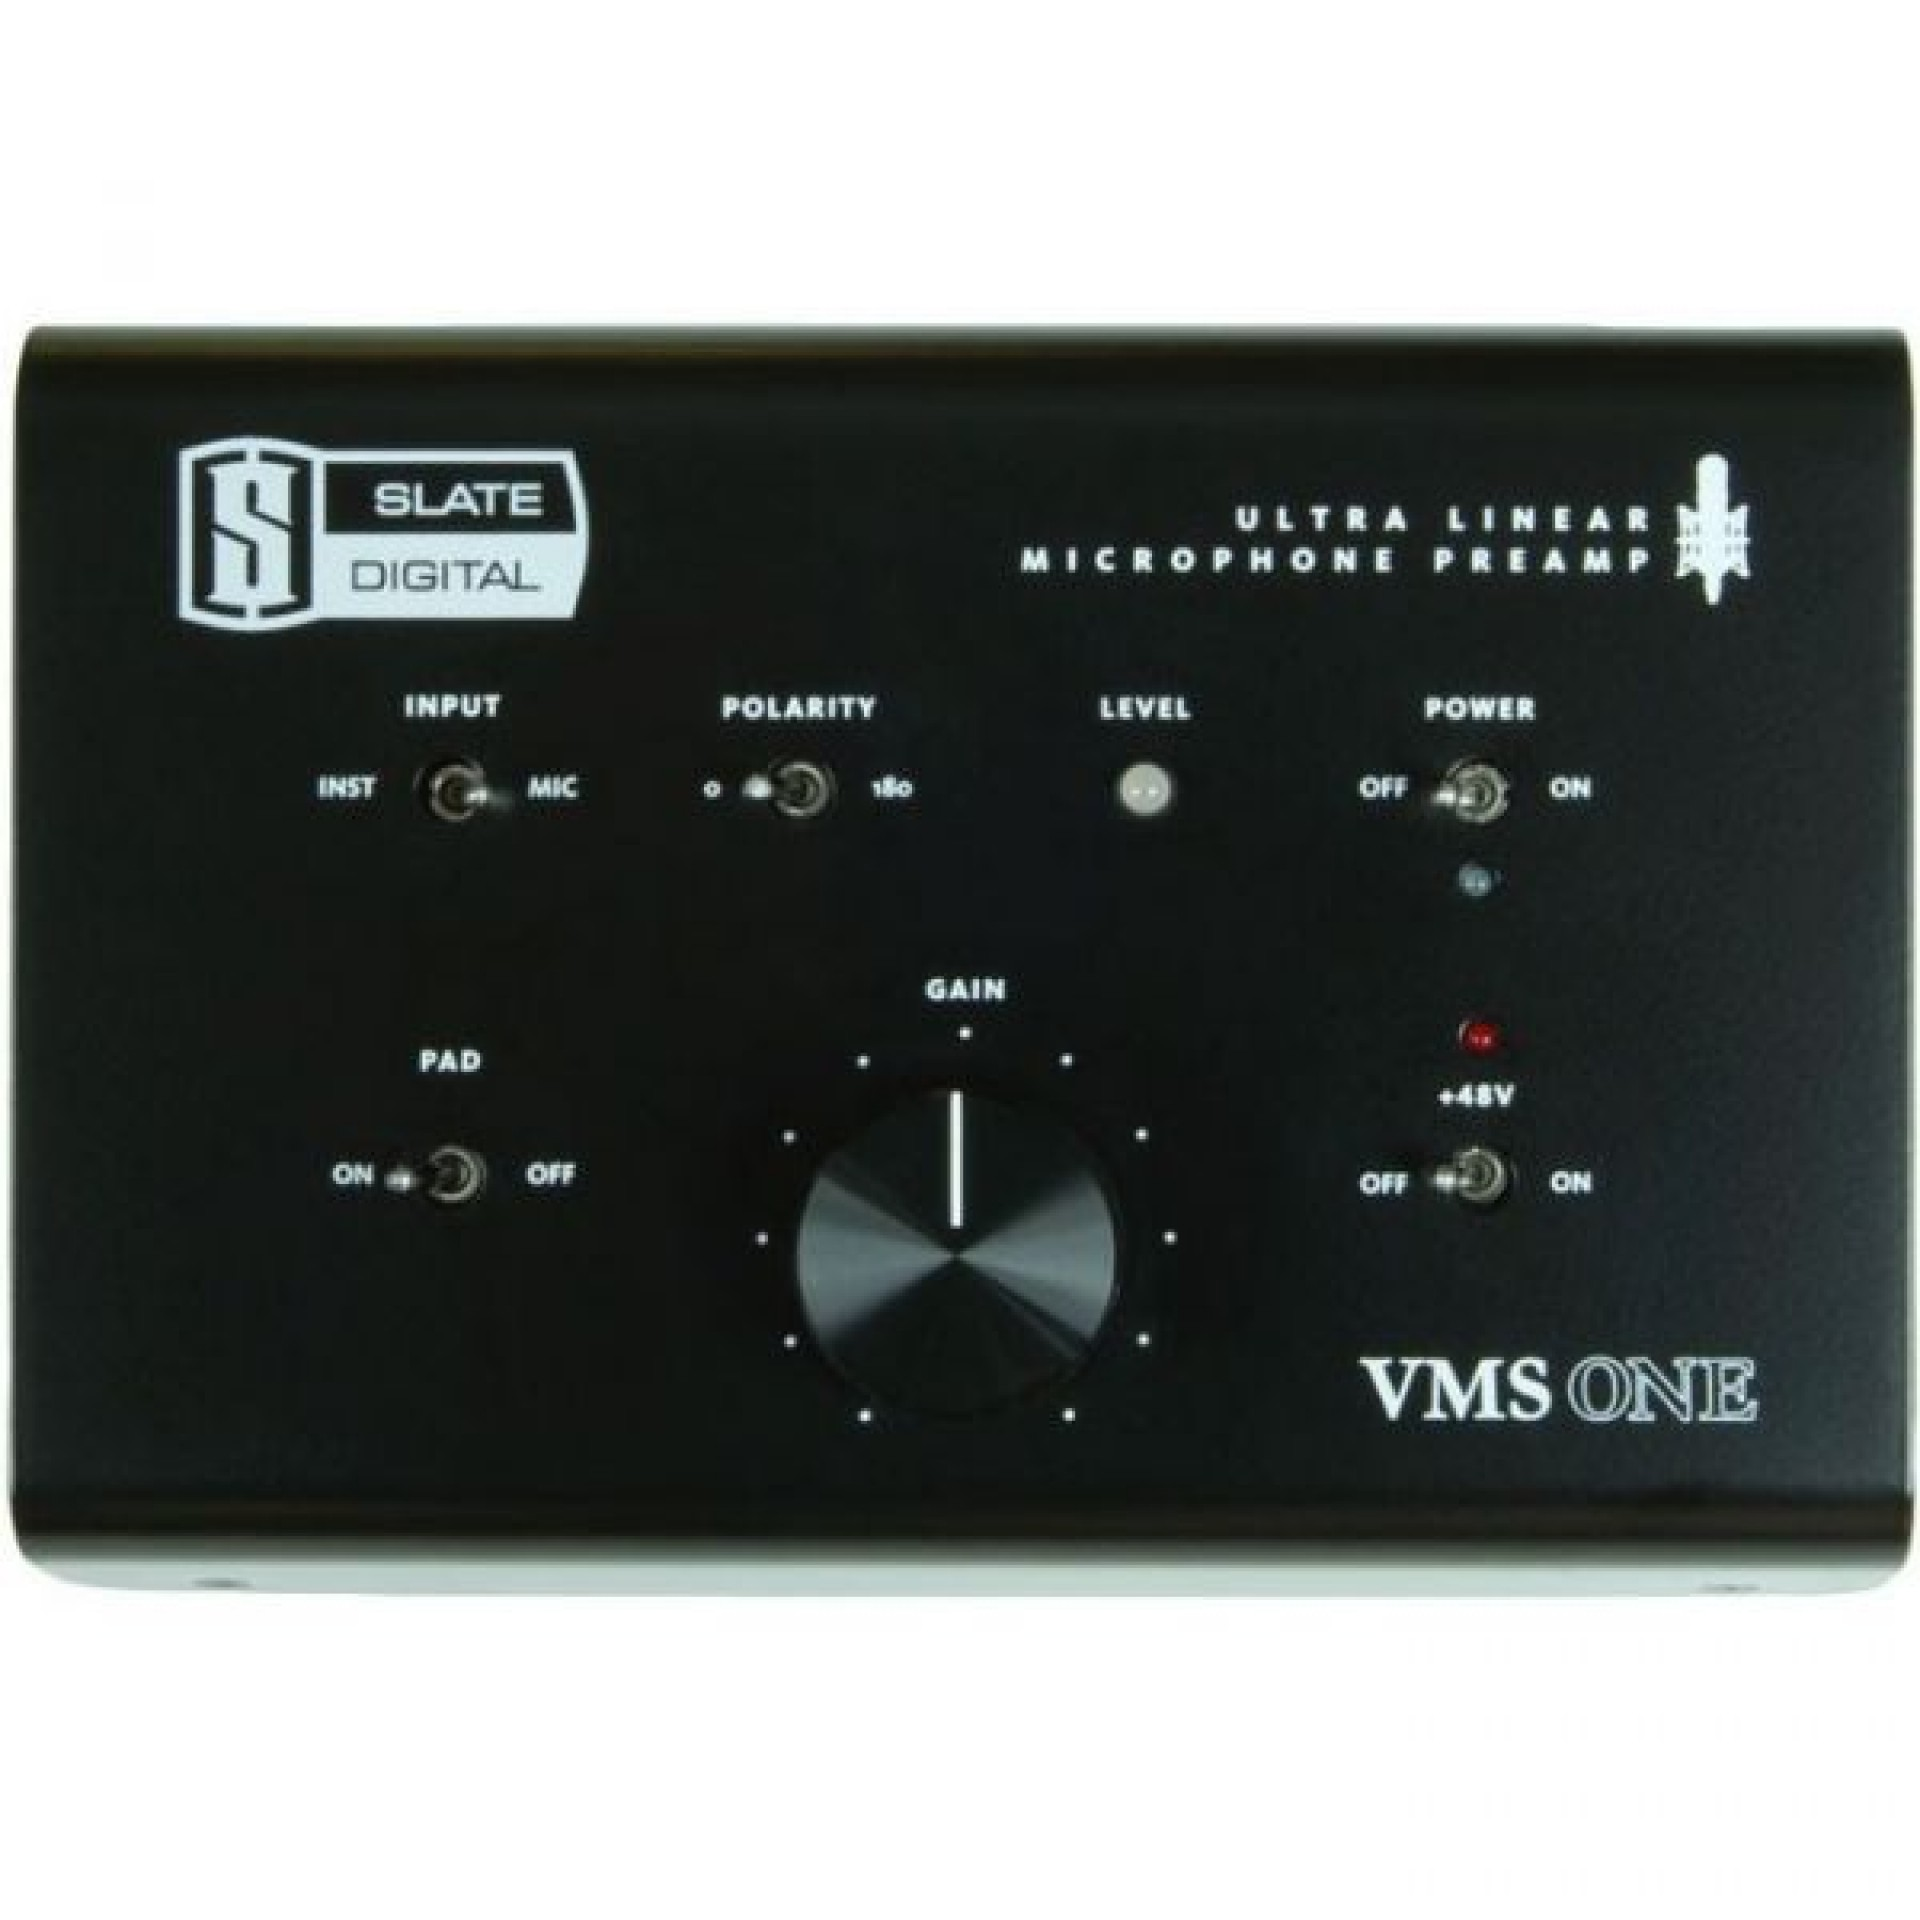 Slate Digital VMS One Preamp (Ultralinear Microphone Preamp)